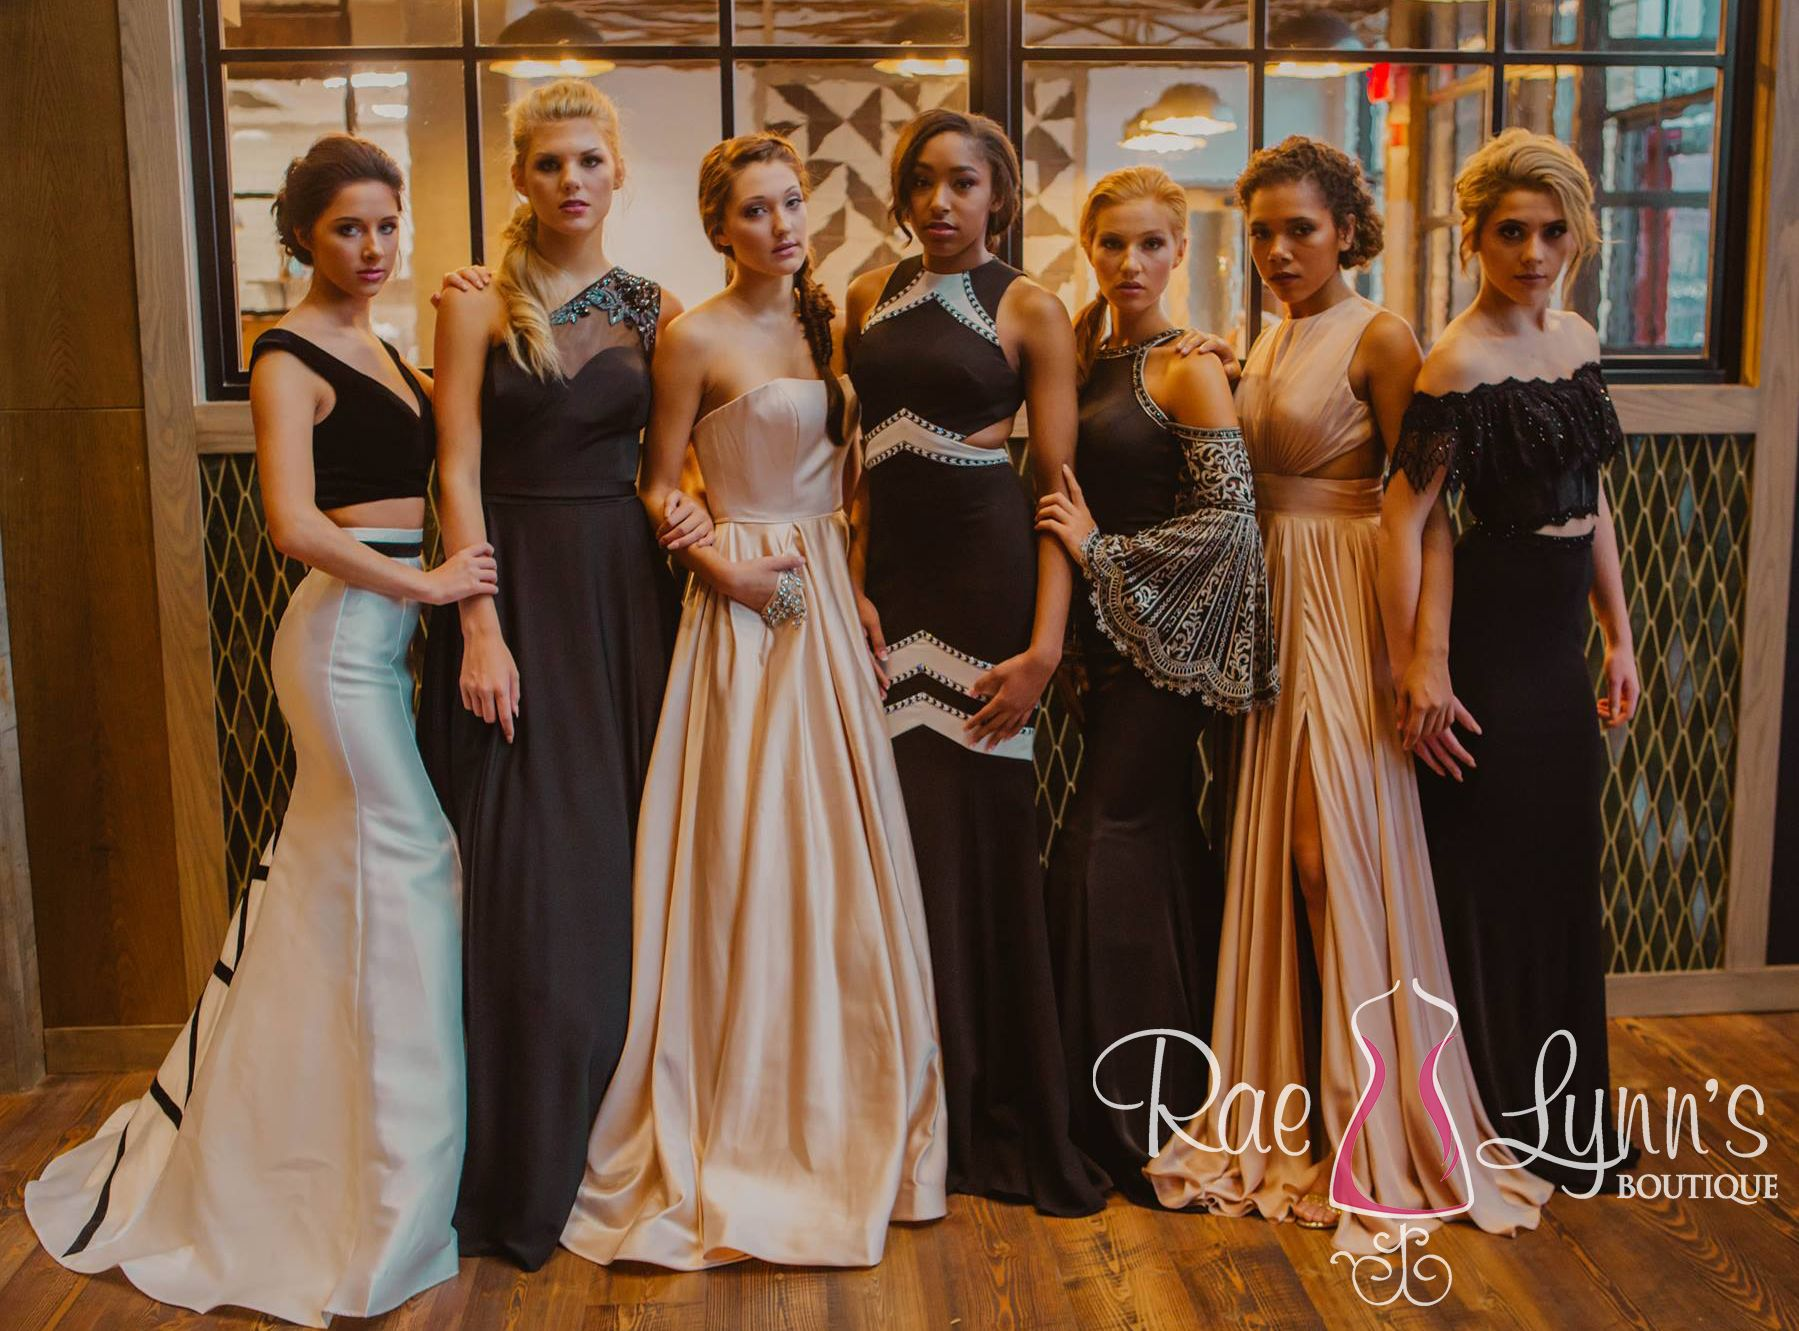 RaeLynns Boutique has the largest selection of Prom Dresses in Indiana